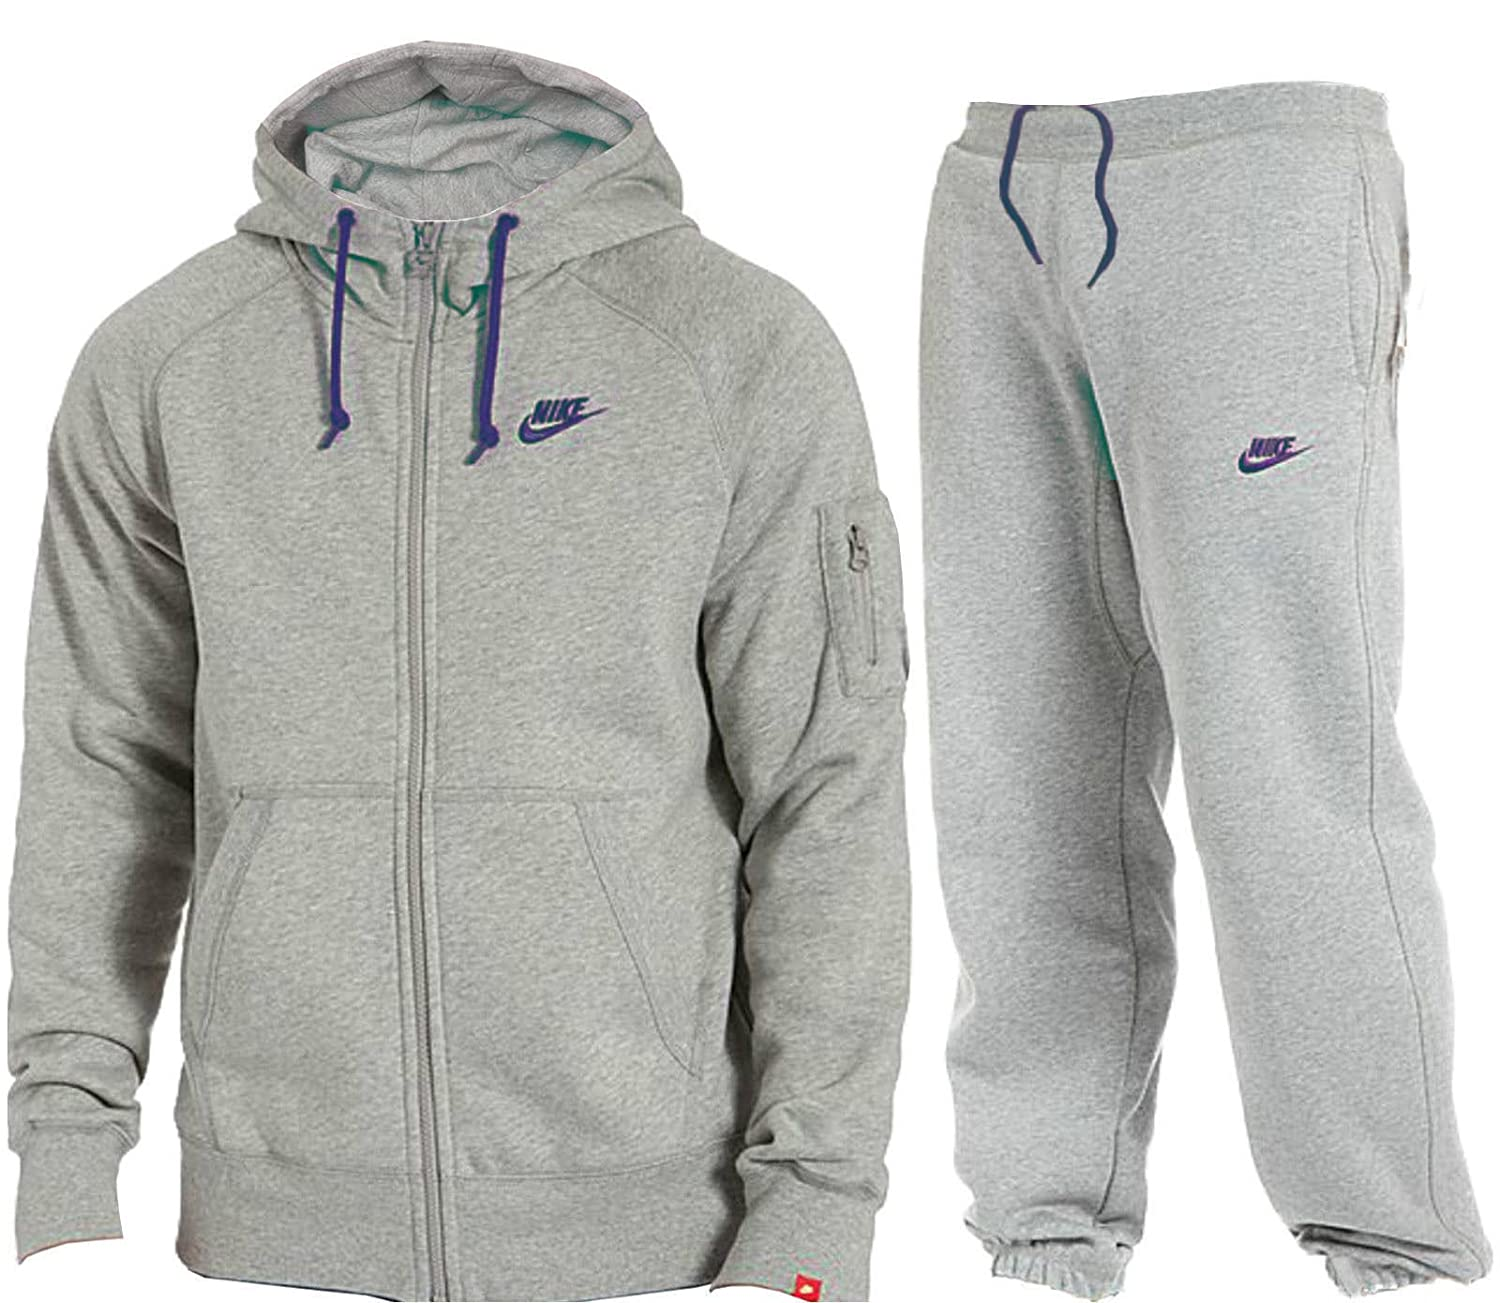 huge discount 1b472 88b60 Nike Mens Jog Suit Foundation Fleece Tracksuit Brushed Fleece Hooded Sports  Jogging Top Bottoms 2 Colours Marl Grey Sizes S M L XL New (MarlGrey Navy,  L)